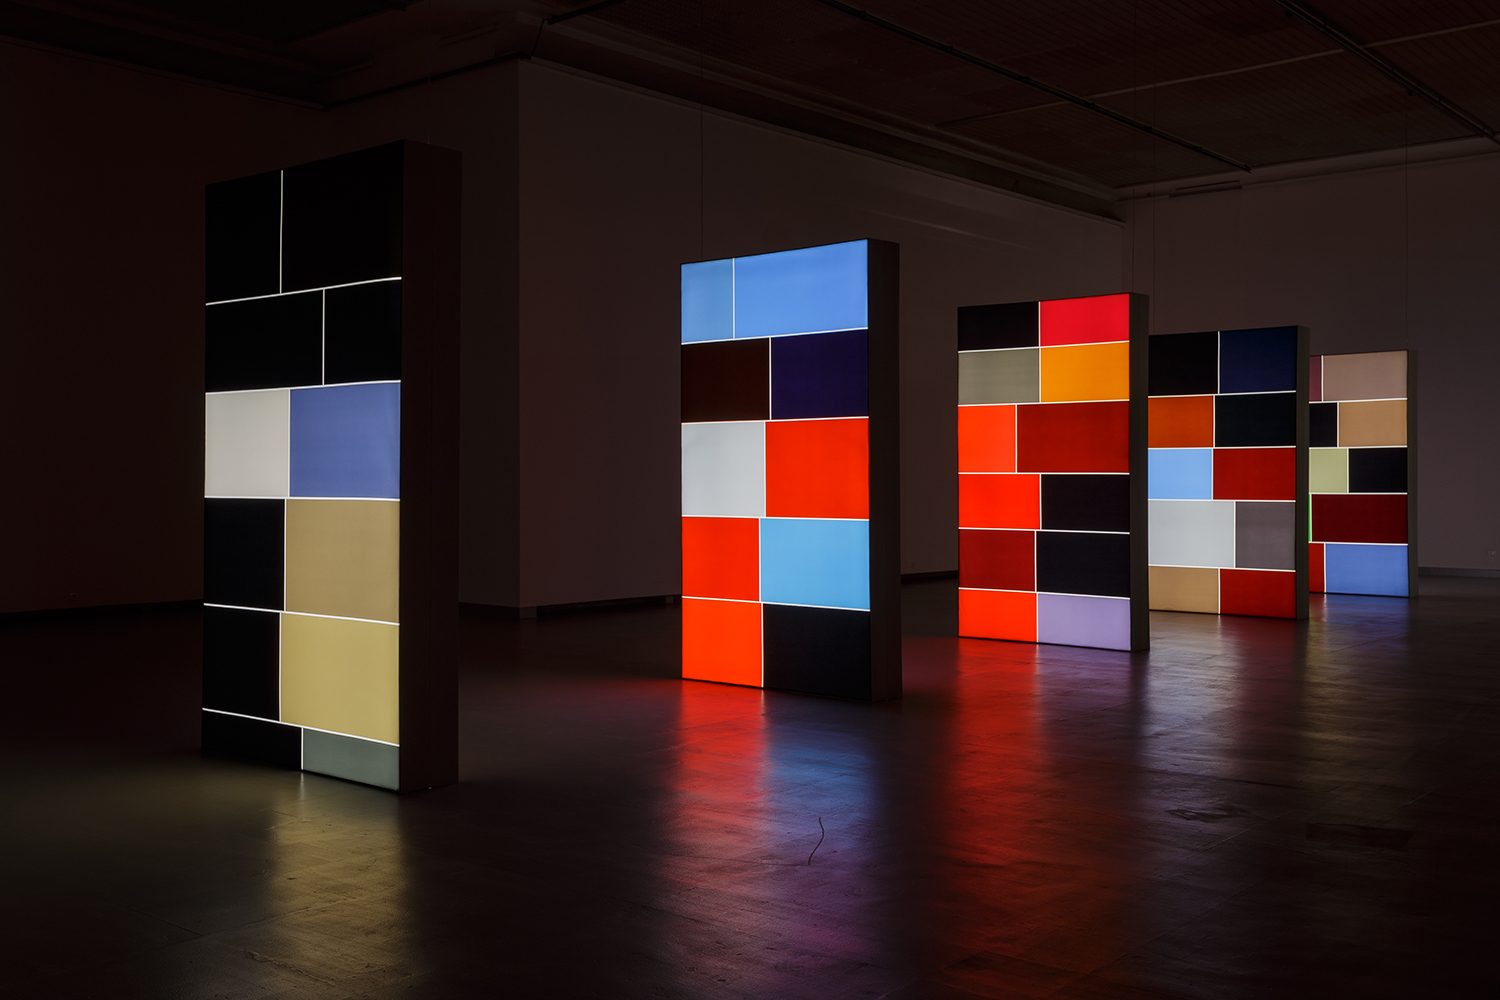 2 Seconds of Colour, 2016, double sided fabric light boxes, 150cm x 265cm x 30cm, installation, Contemporary Art Centre, Vilnius, Lithuania, 2017, photo: Andrej Vasilenko